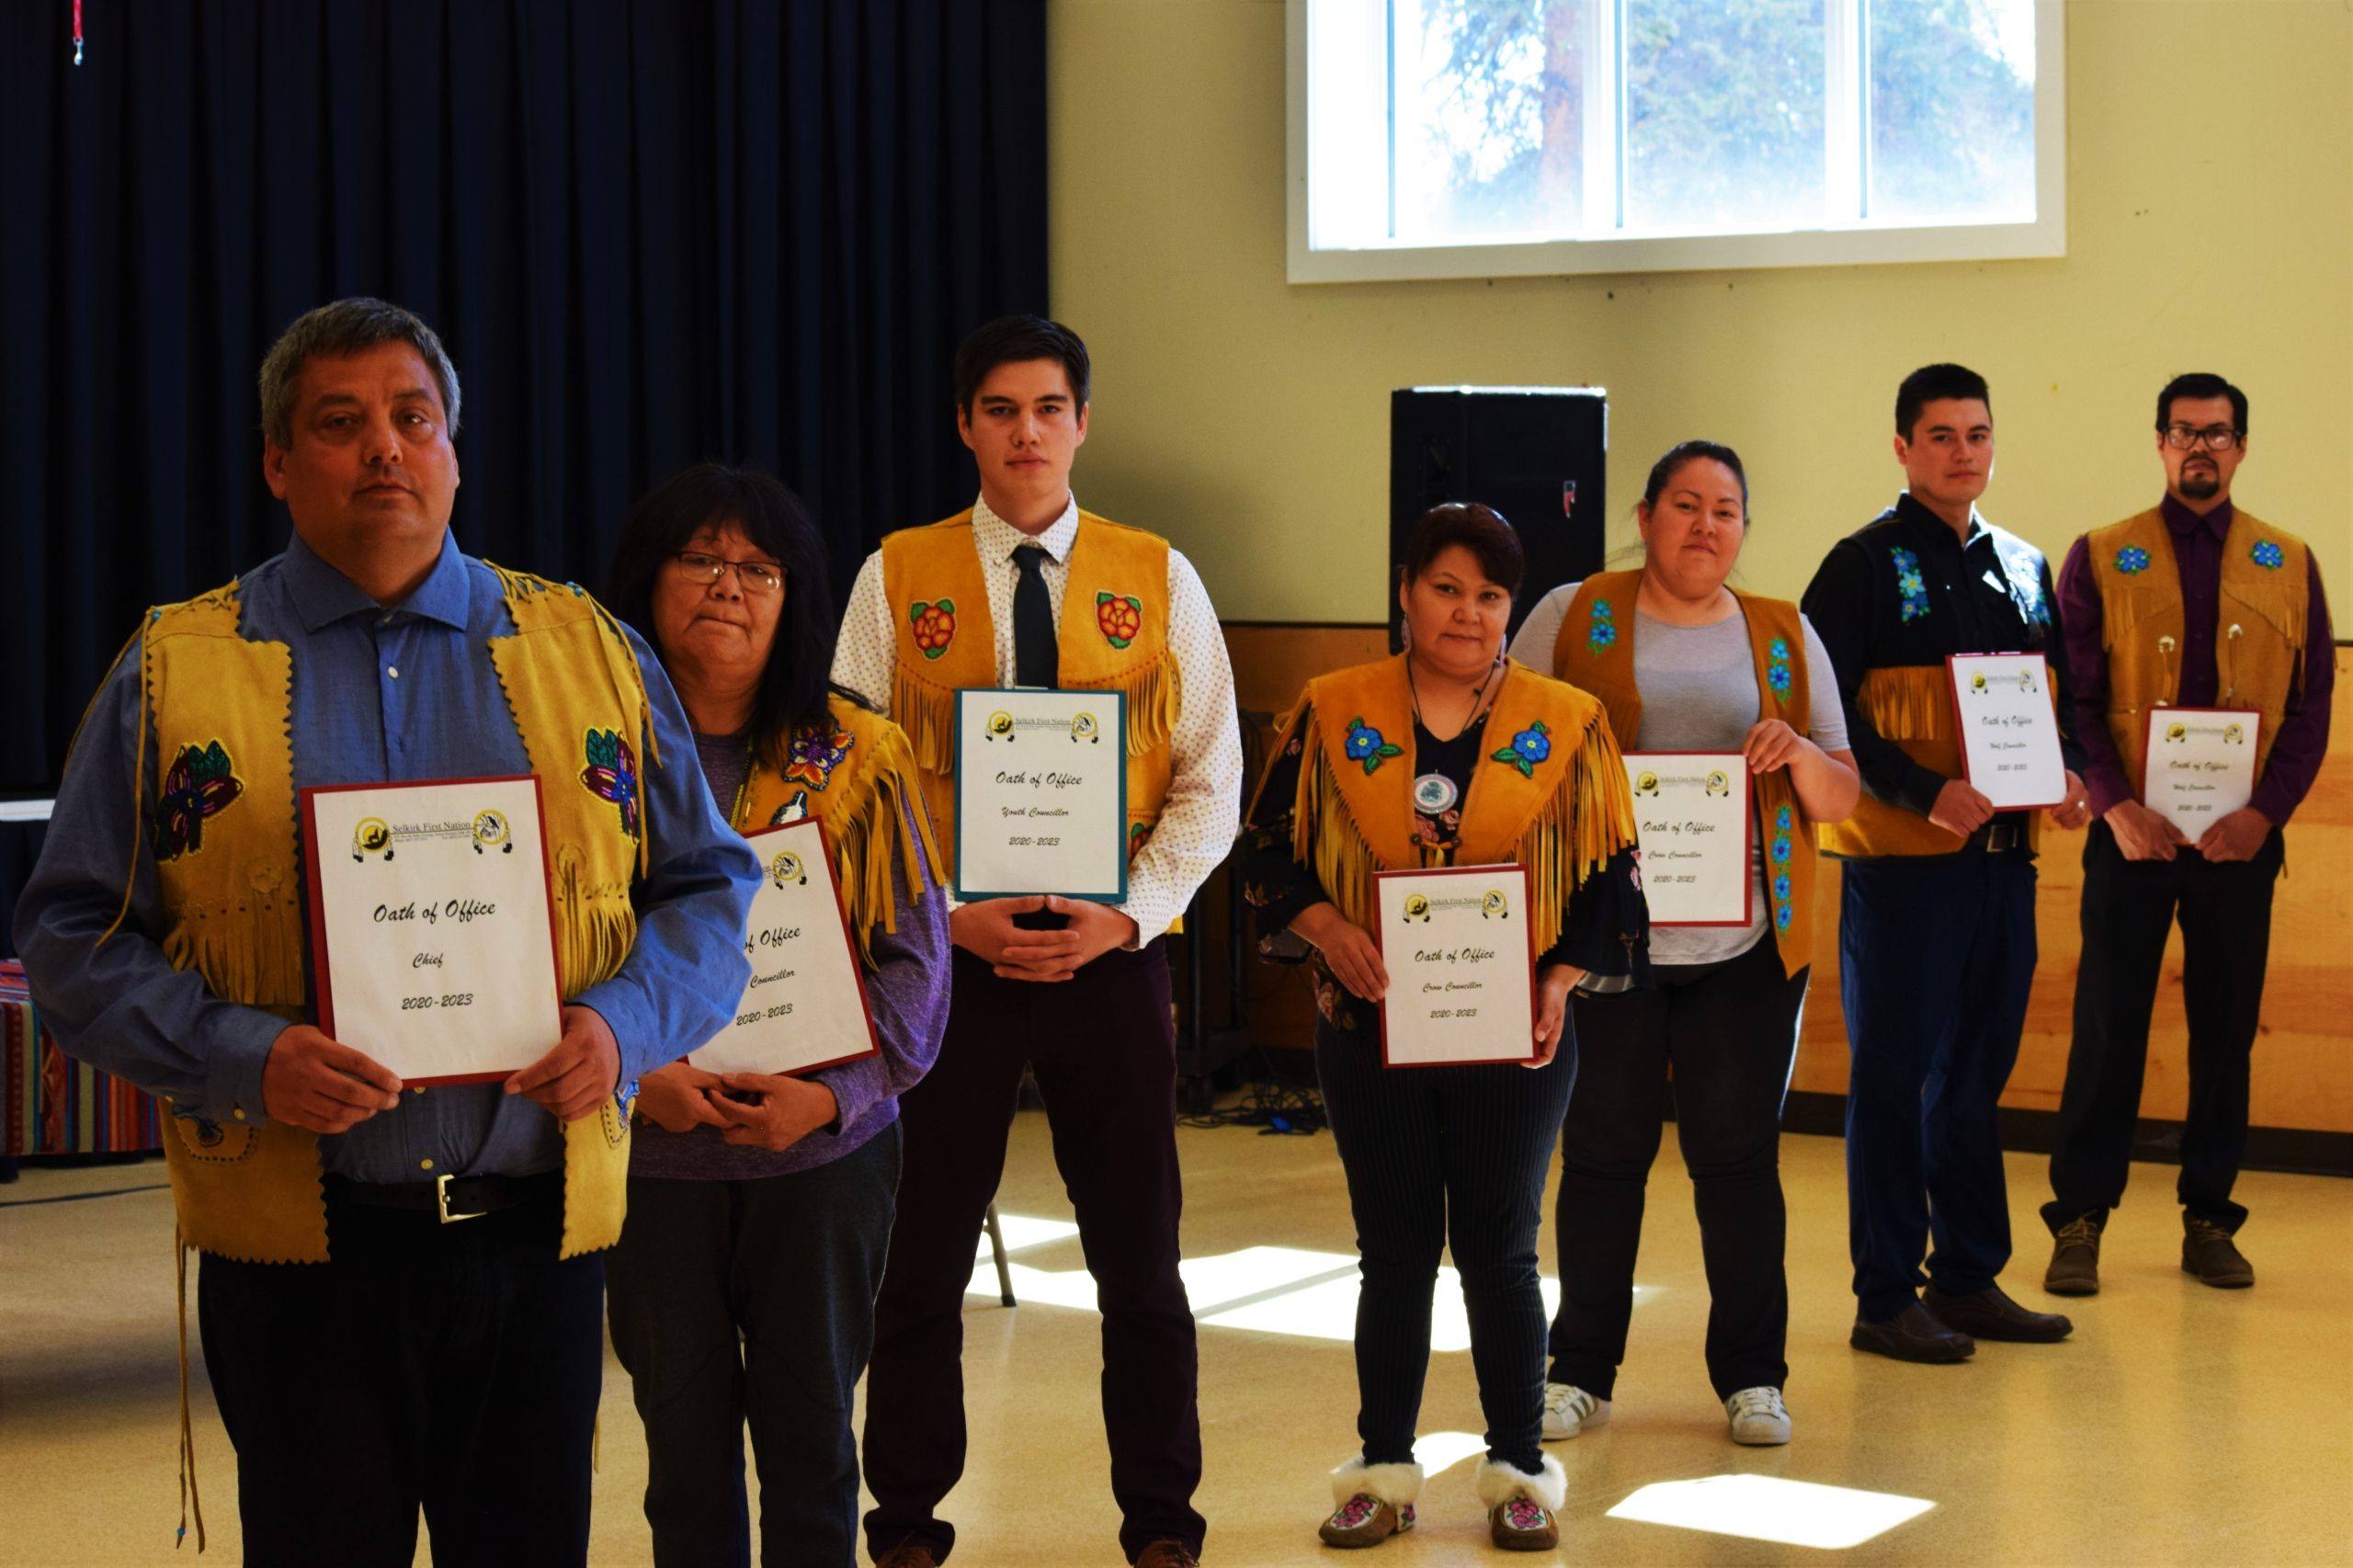 Left to Right: Chief Darin Isaac, Elder Councillor Amy Johnnie, Youth Councillor Cody Sims, Crow Councillor Carmen Baker, Crow Councillor Ashley Edzerza, Wolf Councillor Morris Morrison and Wolf Councillor Jeremy Harper